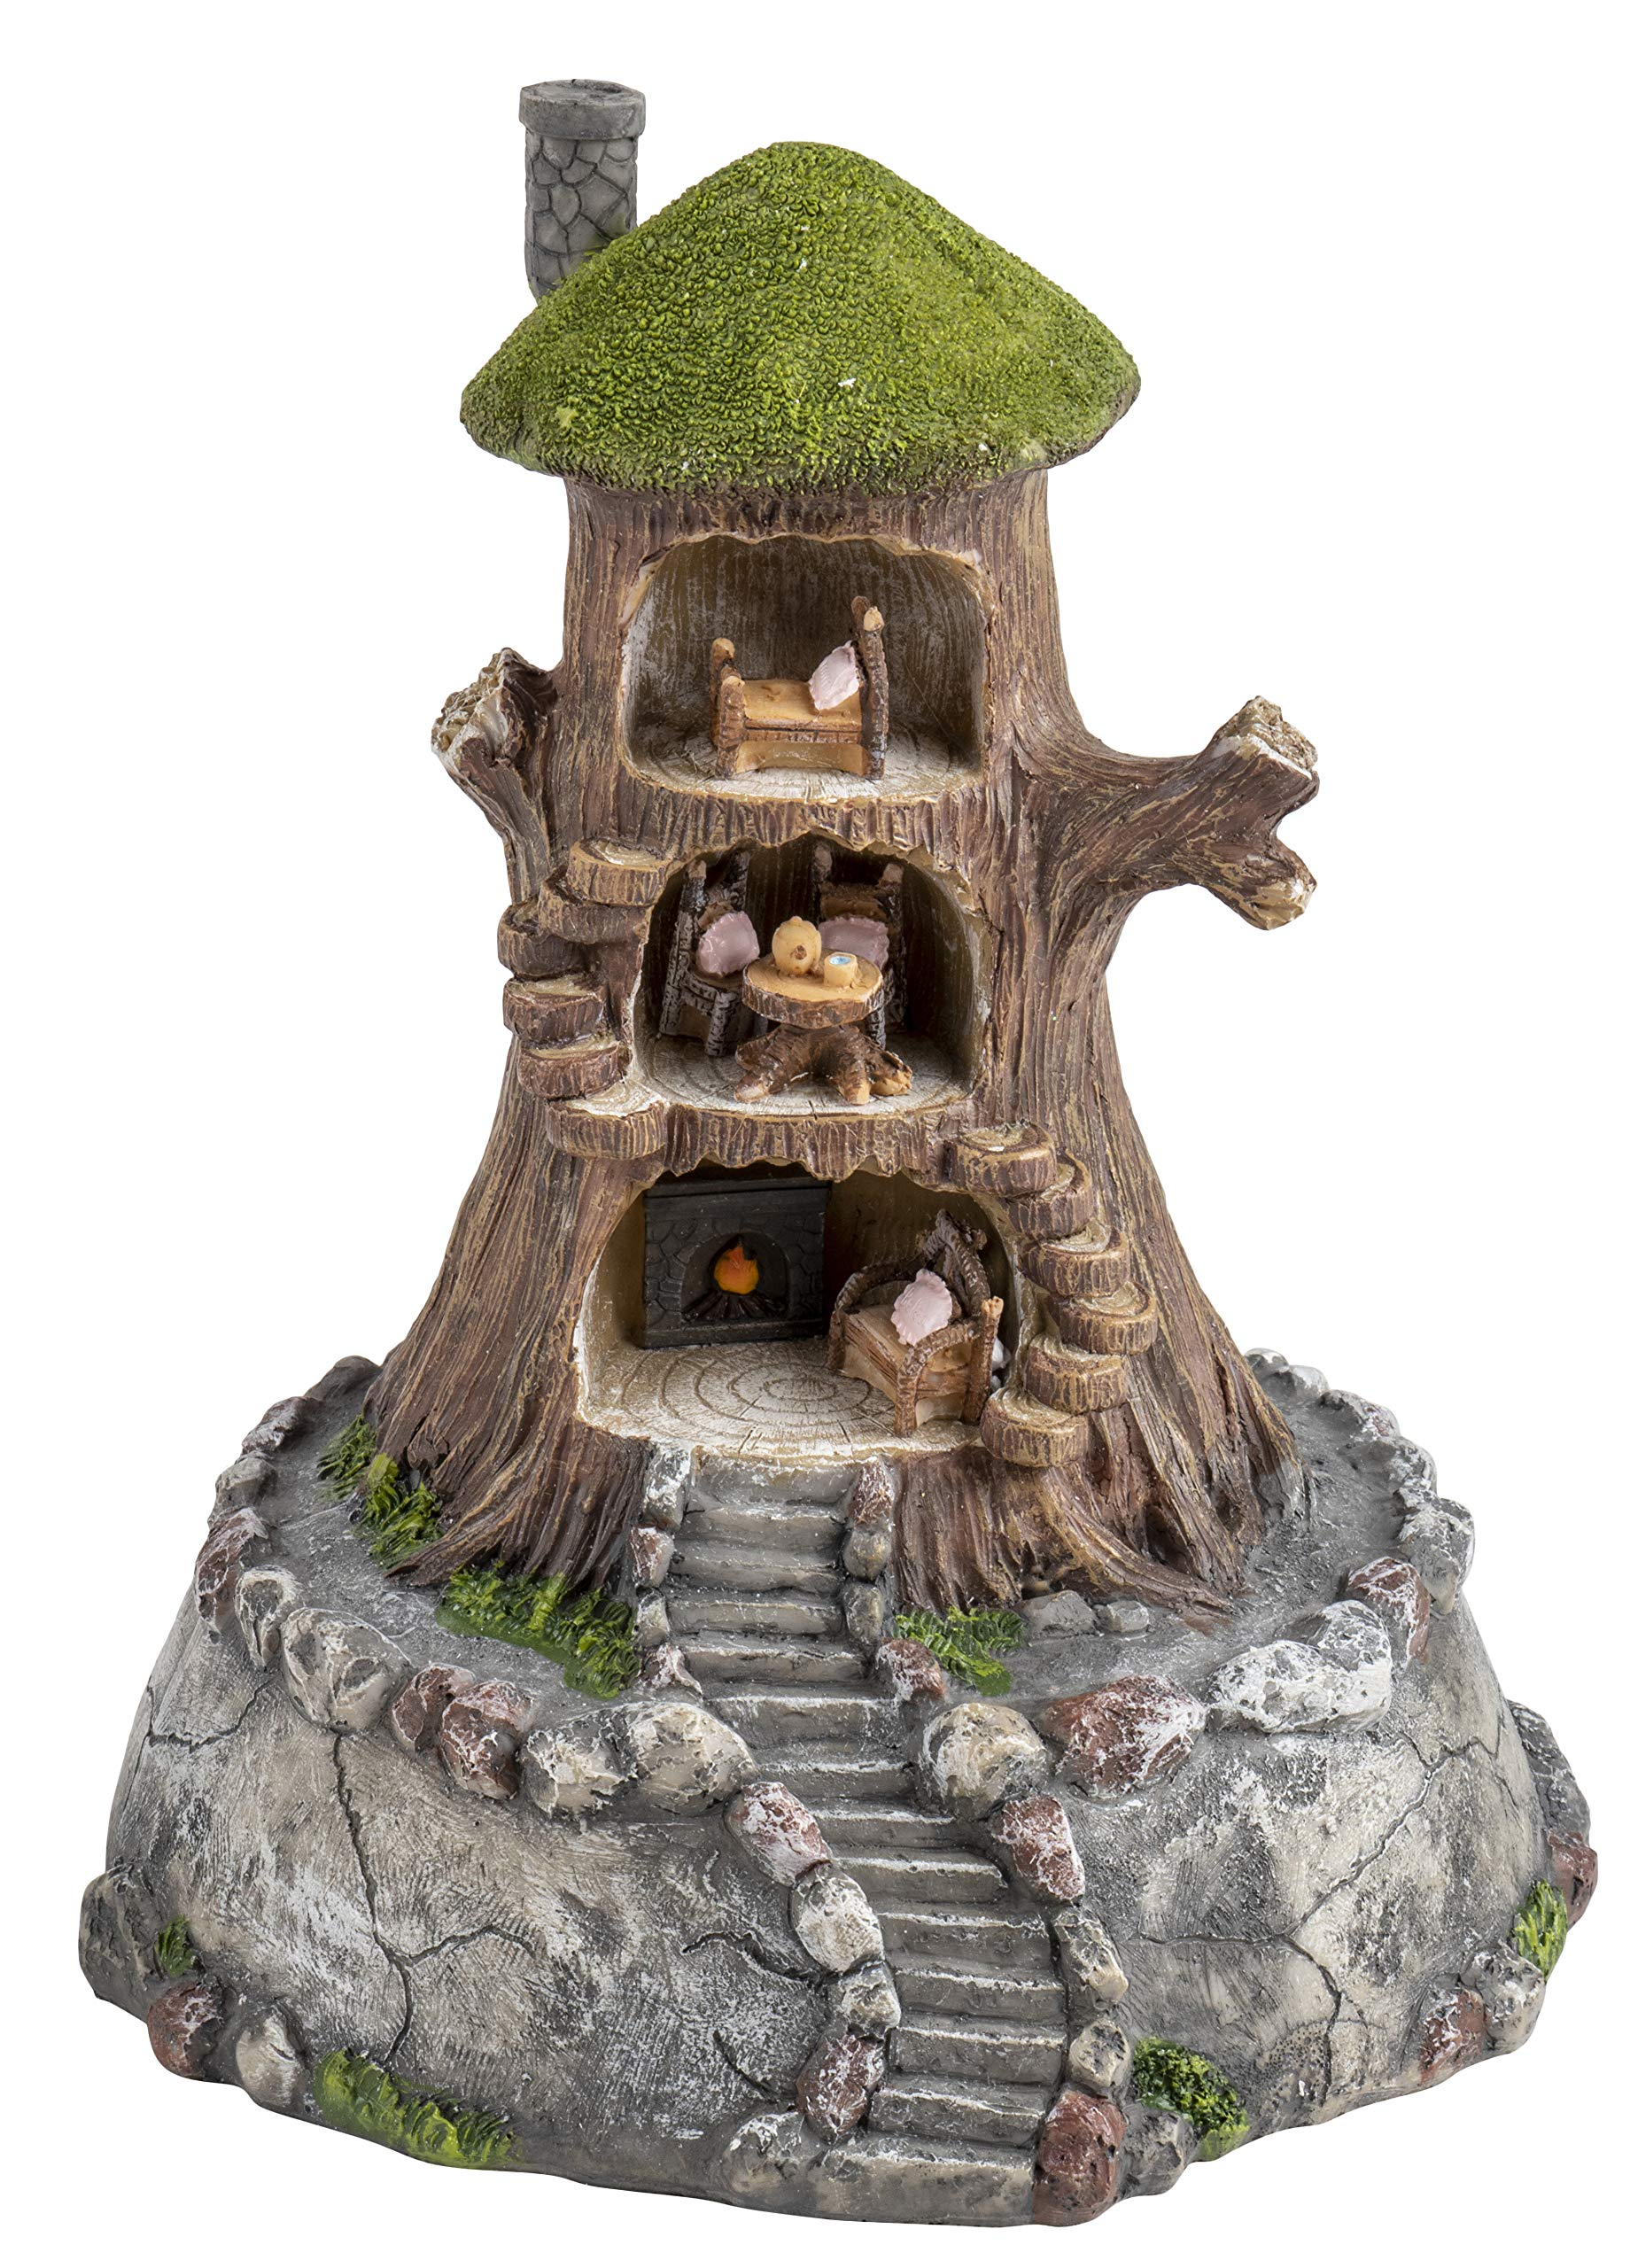 Juvale Fairy Tree House - Fairy Gnome Garden Decorative Figurine Accessory, Polyresin, Indoor Outdoor Decoration, 7.8 x 9.5 Inches